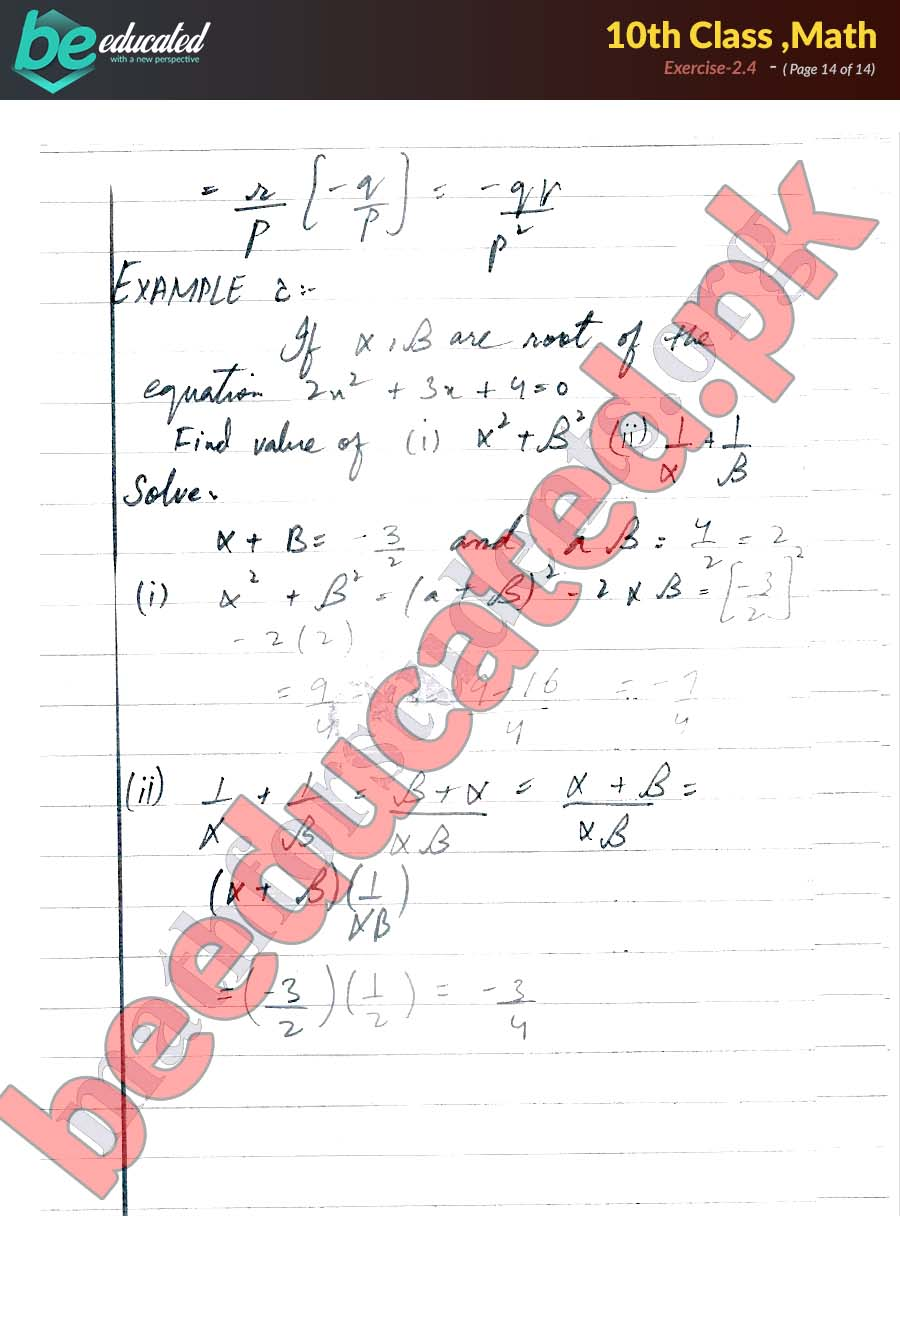 Exercise 2 4 Math 10th Class Notes - Matric Part 2 Notes